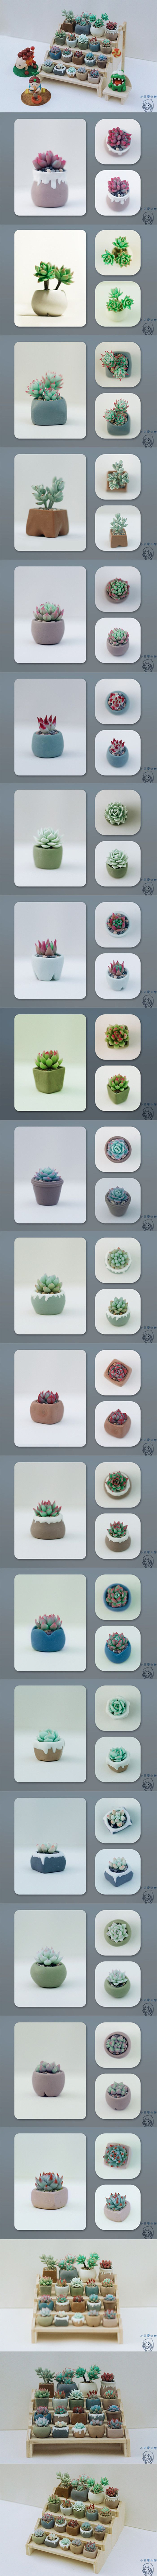 Fimo succulents - If anyone knows the original source, please let me know <3